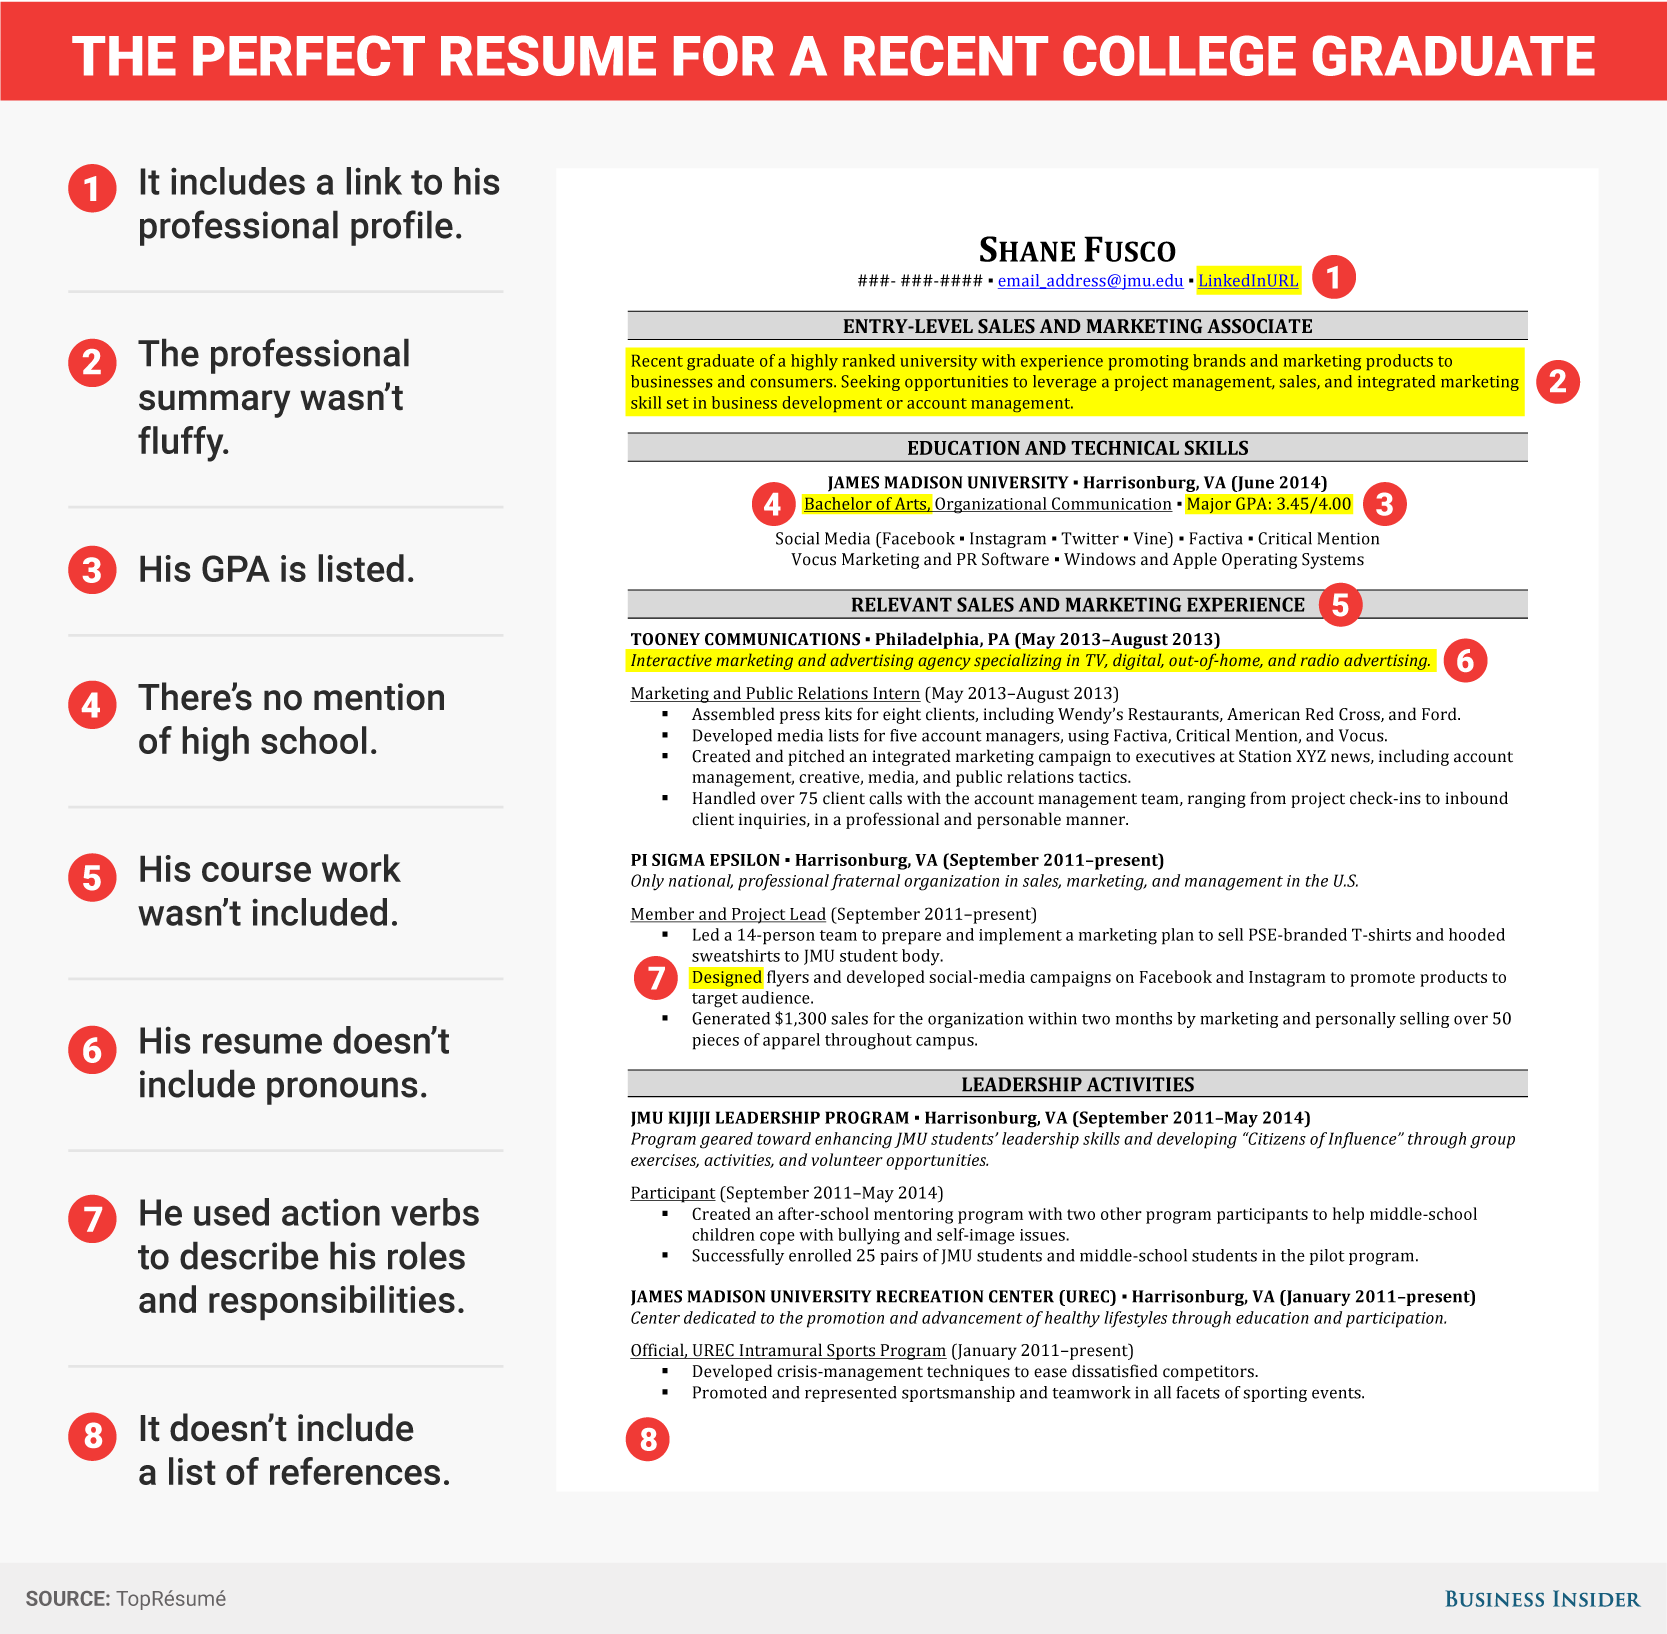 What If I Have No Work Experience For A Resume Excellent Resume For Recent College Grad Business Insider